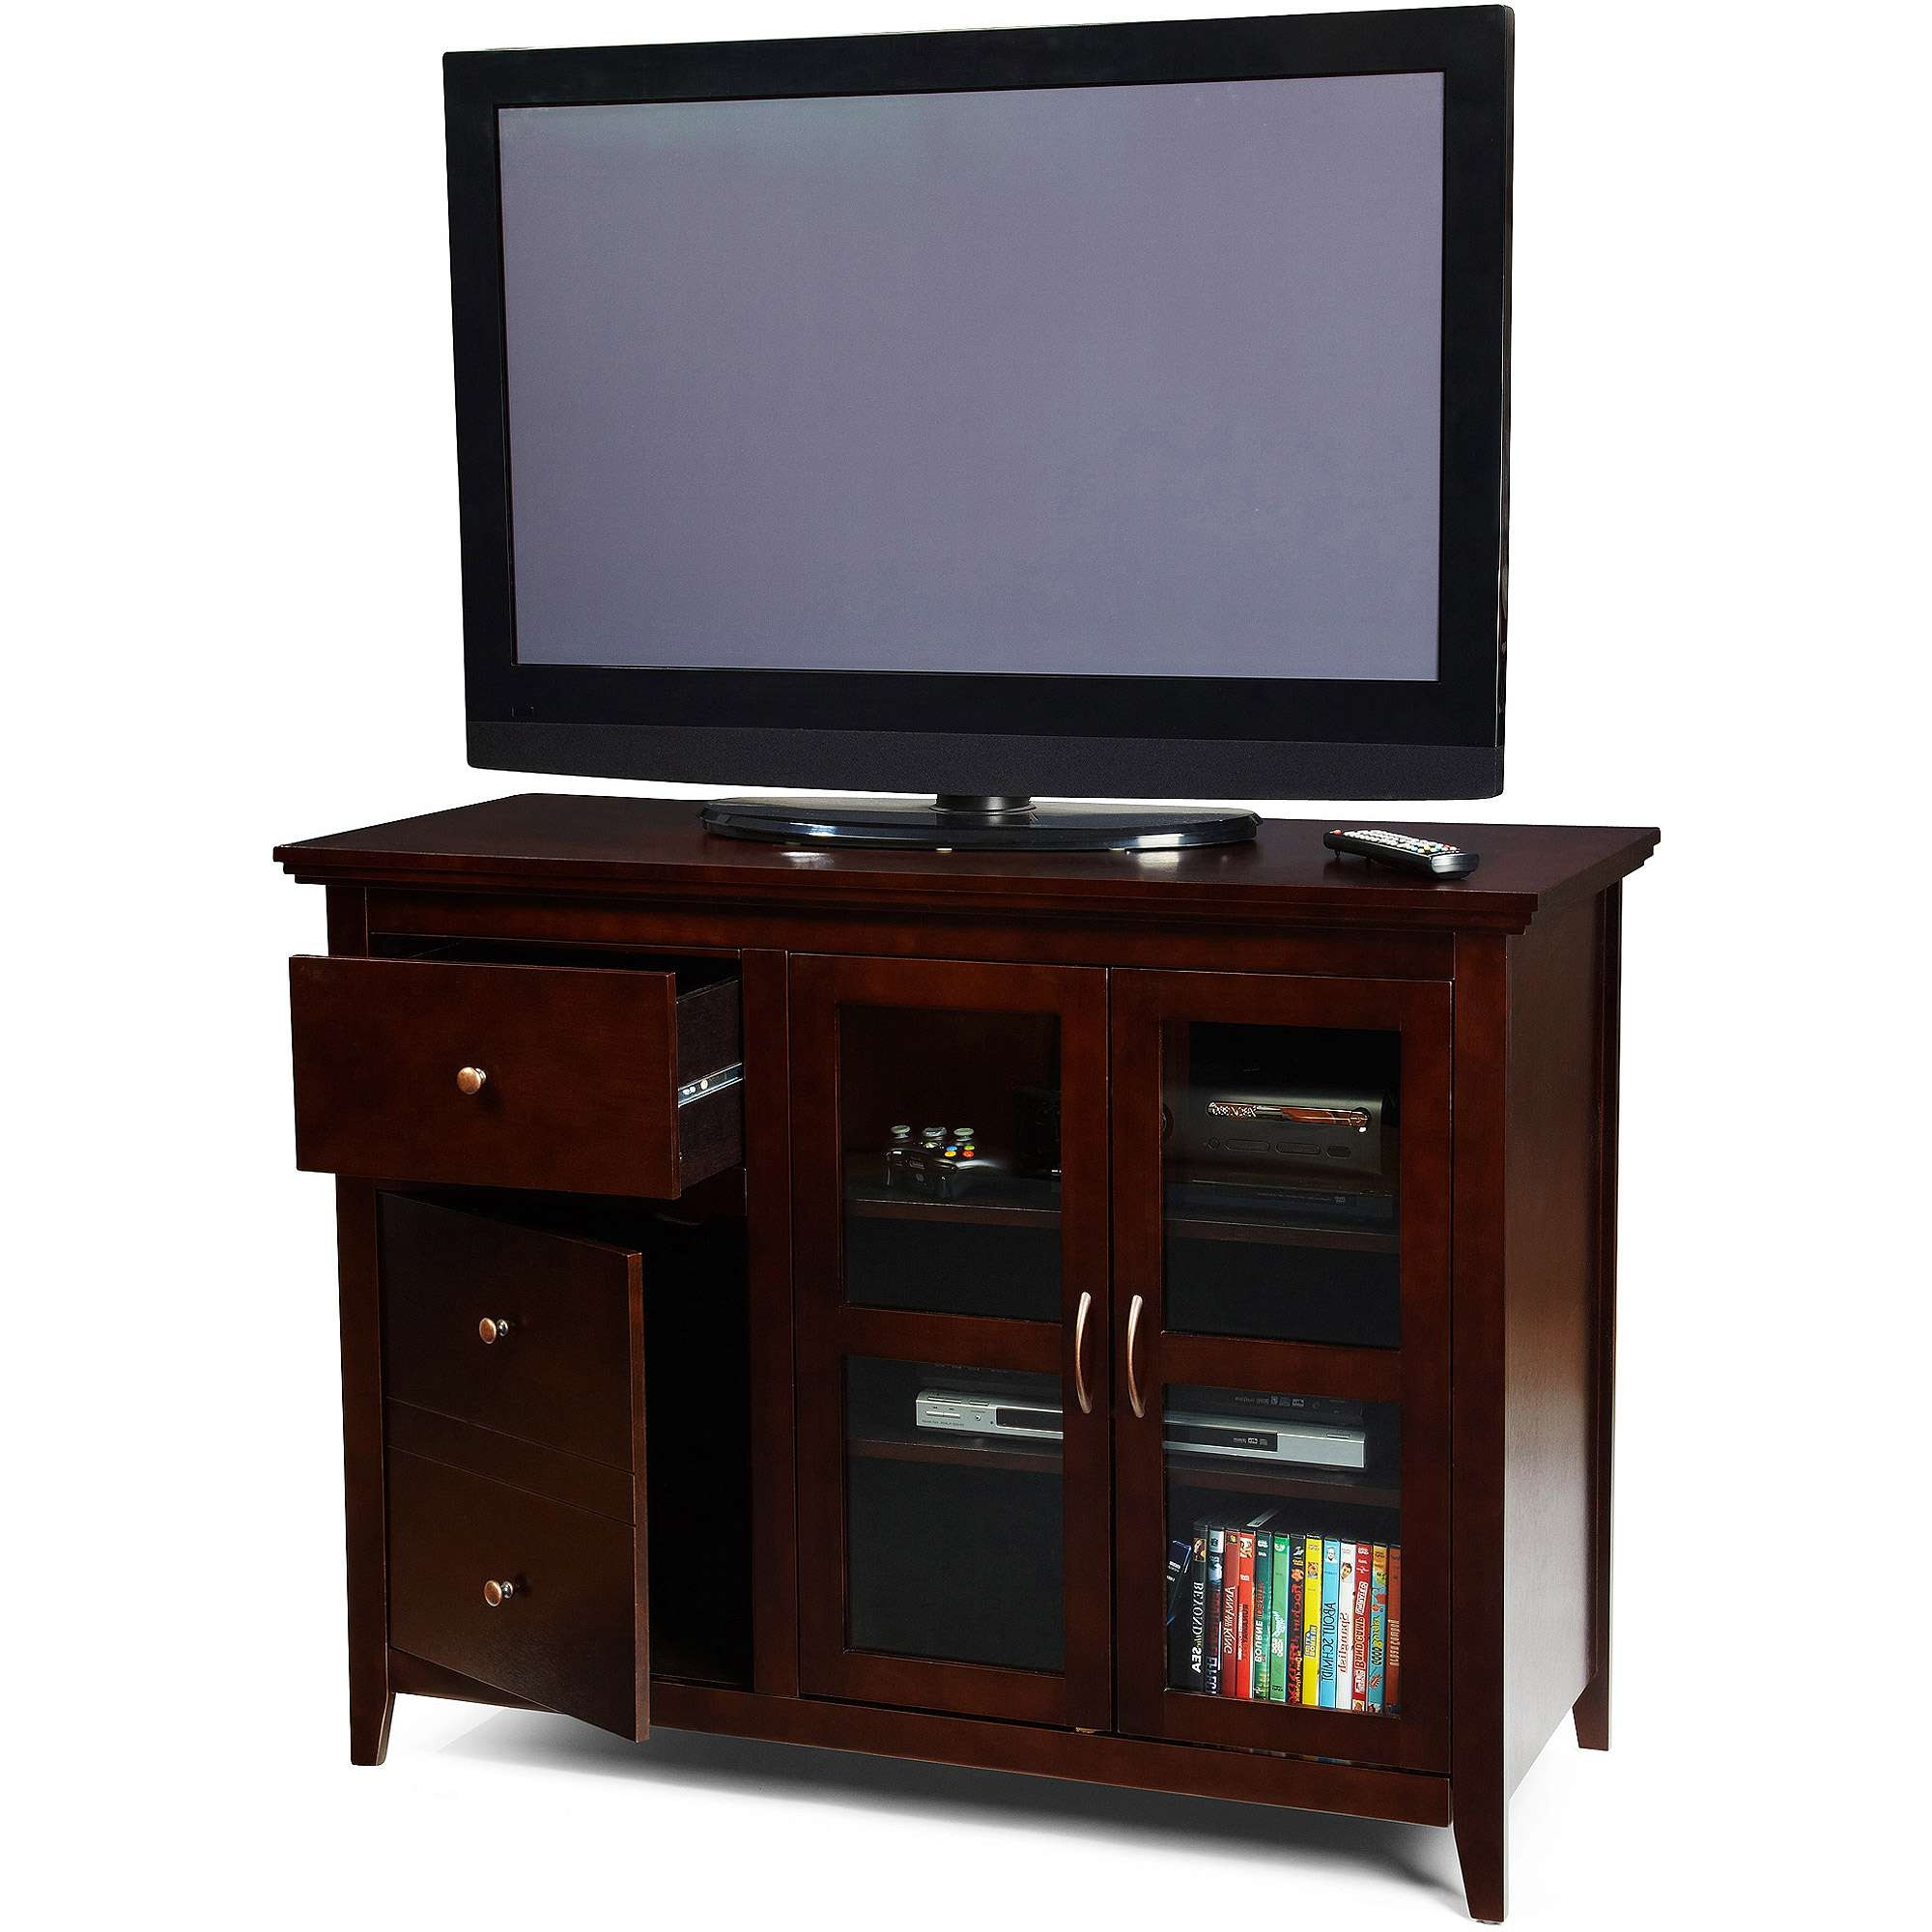 Convenience Concepts Sierra Highboy Tv Stand For Tvs Up To 50 Within Highboy Tv Stands (View 14 of 15)